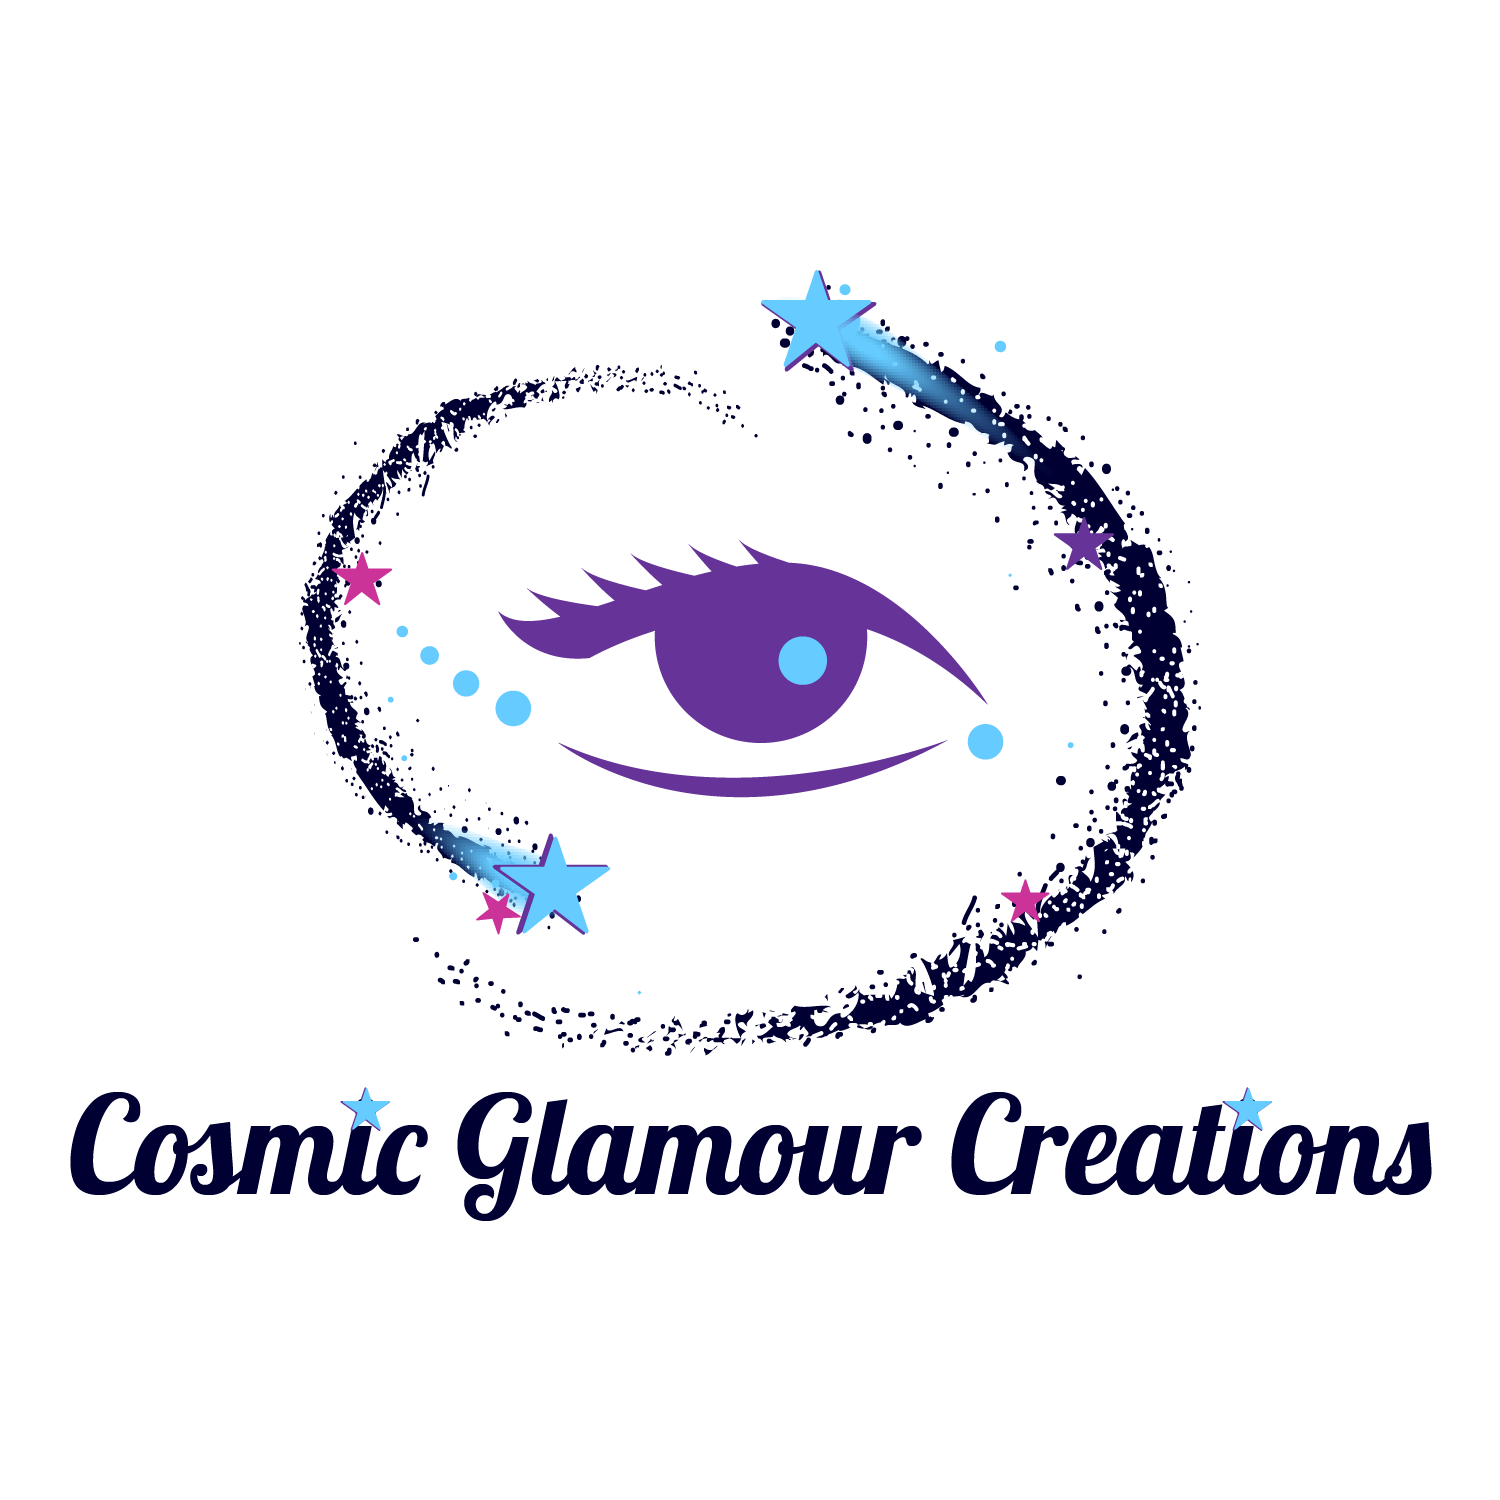 Cosmic Glamour Creations